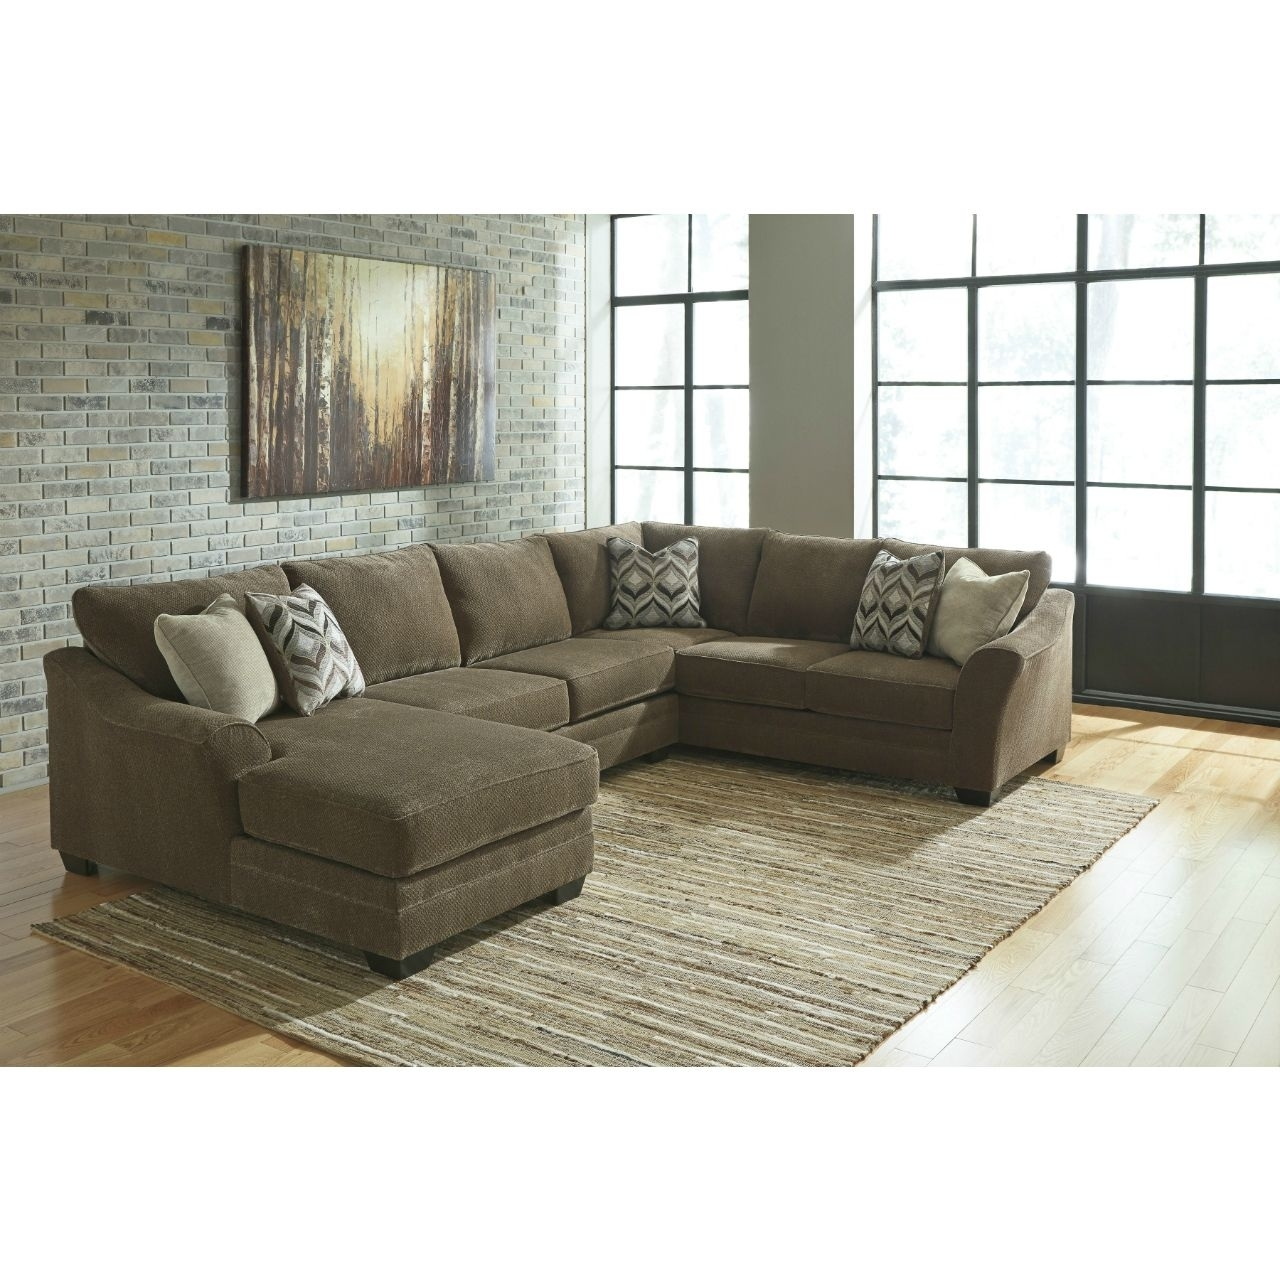 Douglas 3 Piece Sectional | For The Home | Pinterest | Room, Living Inside Benton 4 Piece Sectionals (Image 10 of 25)